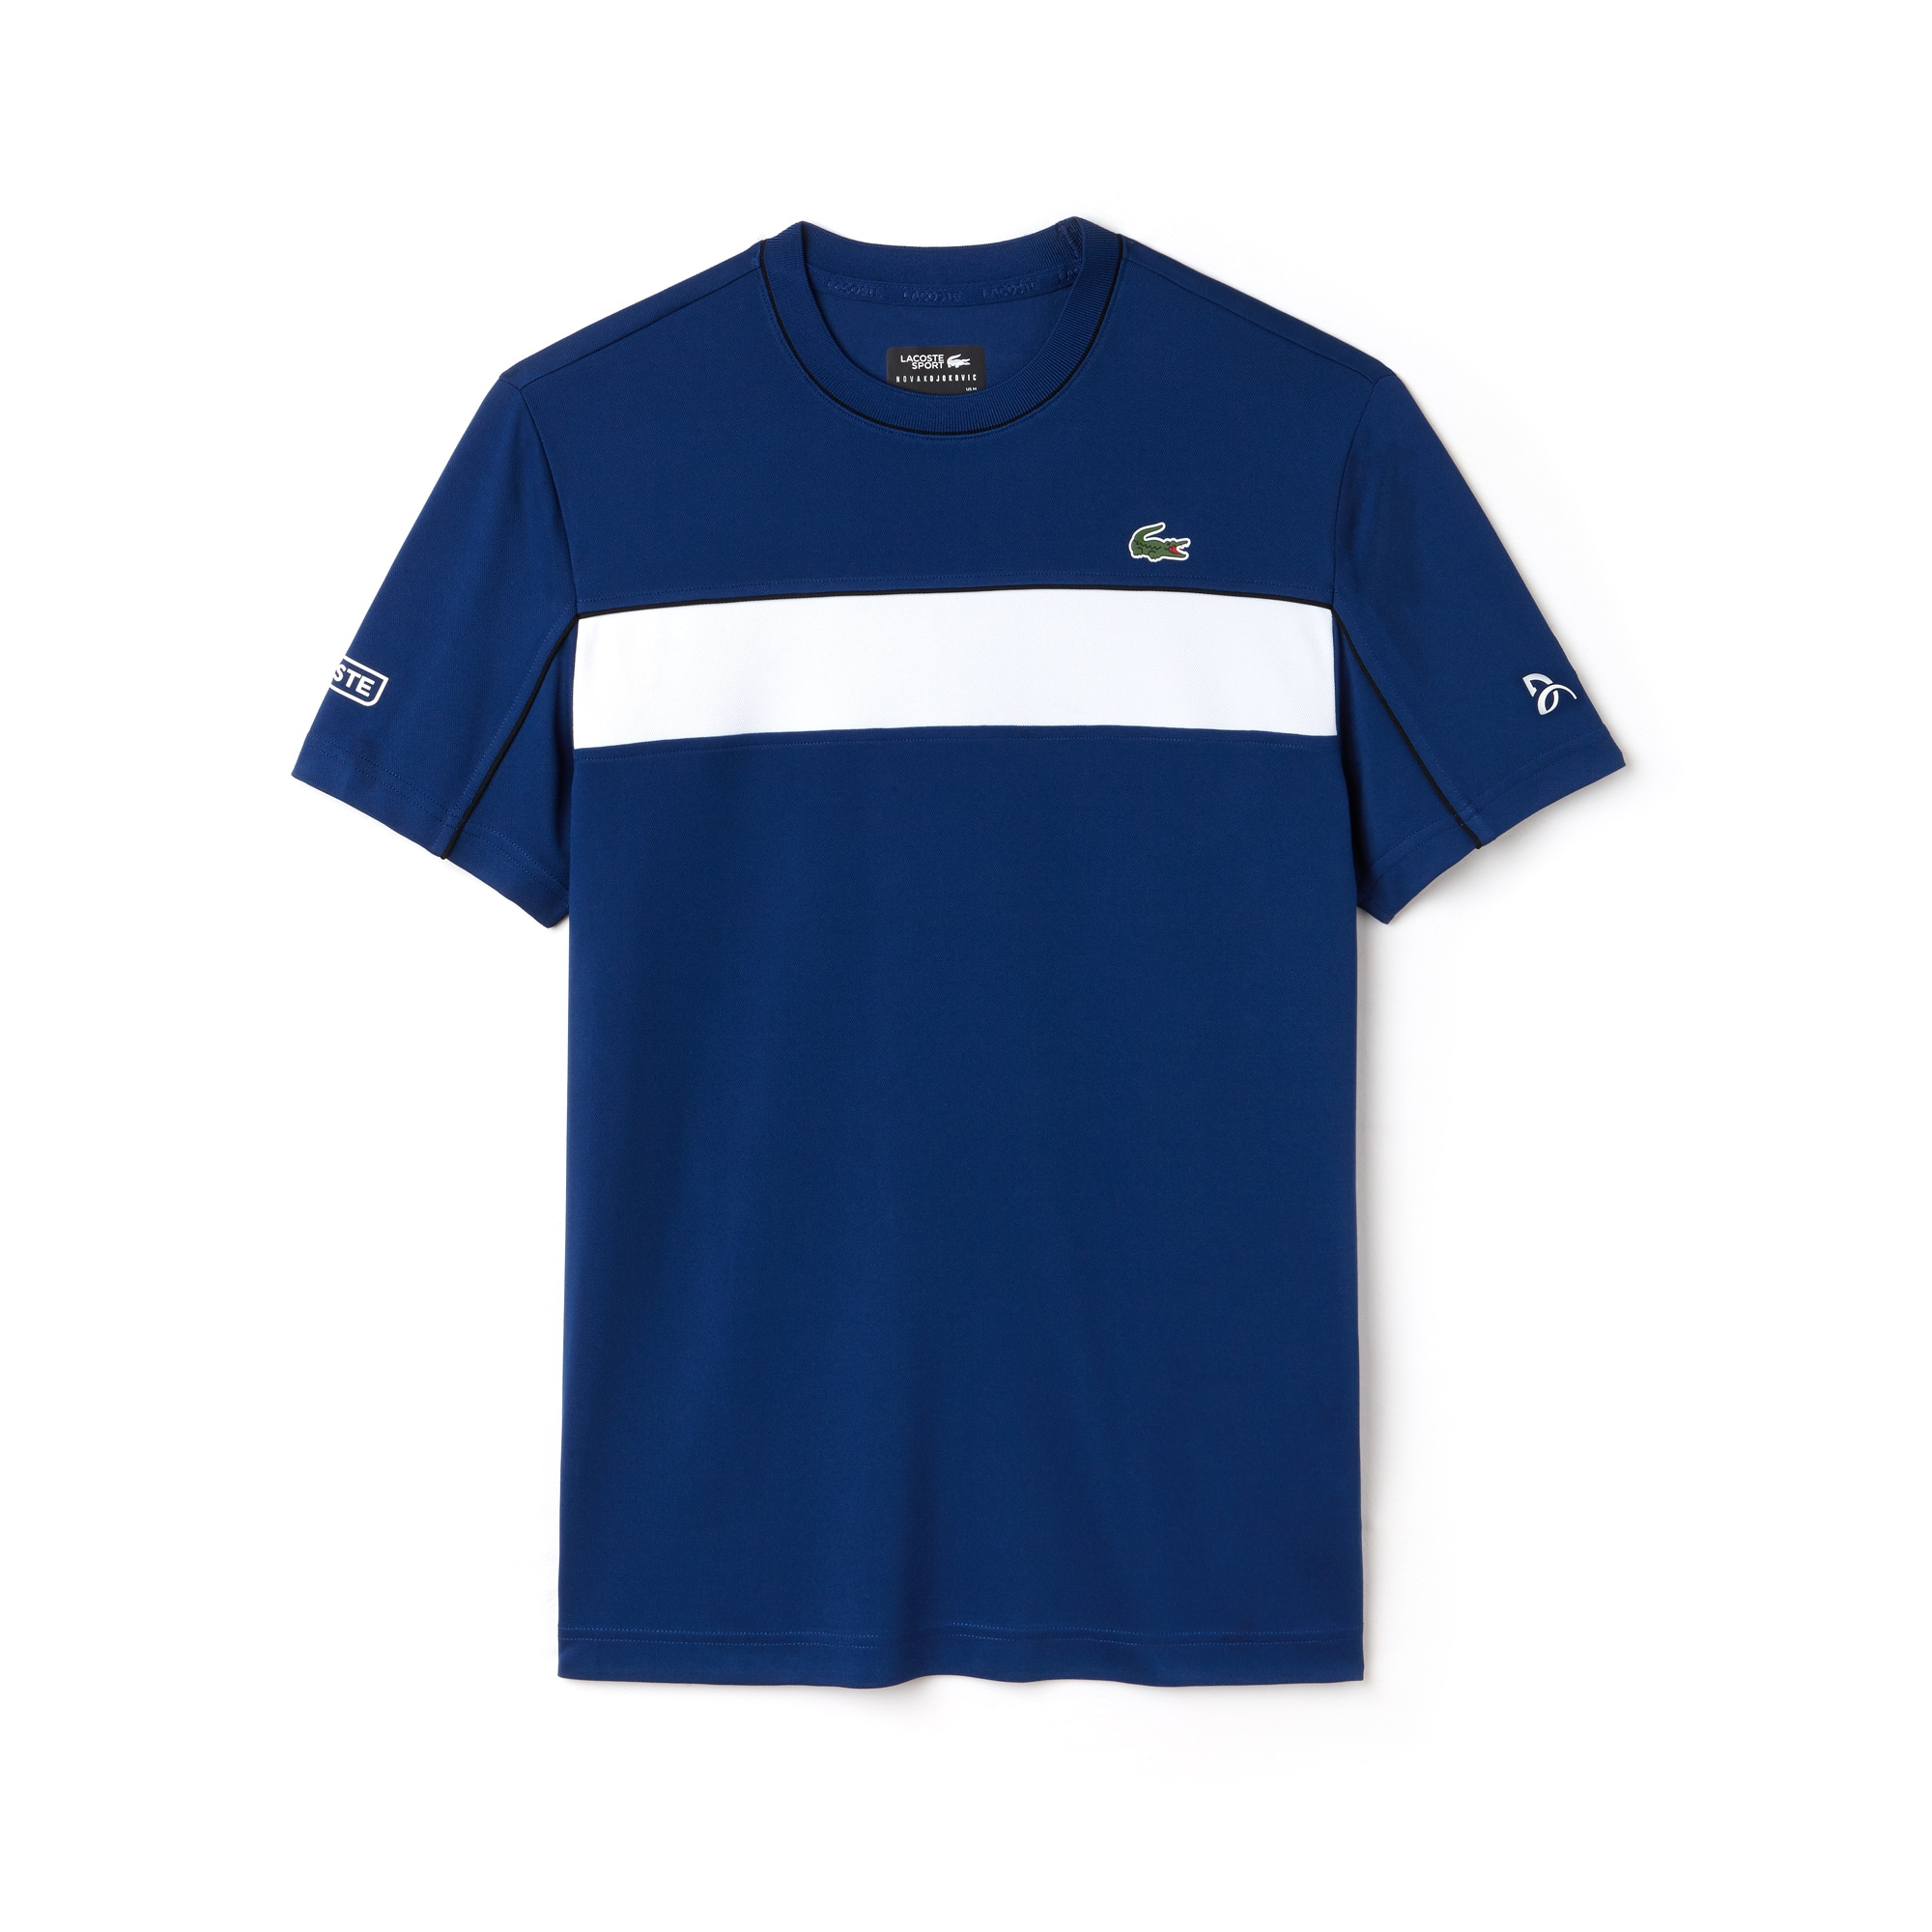 Men's LACOSTE SPORT NOVAK DJOKOVIC COLLECTION Colorblock Tech Piqué T-shirt